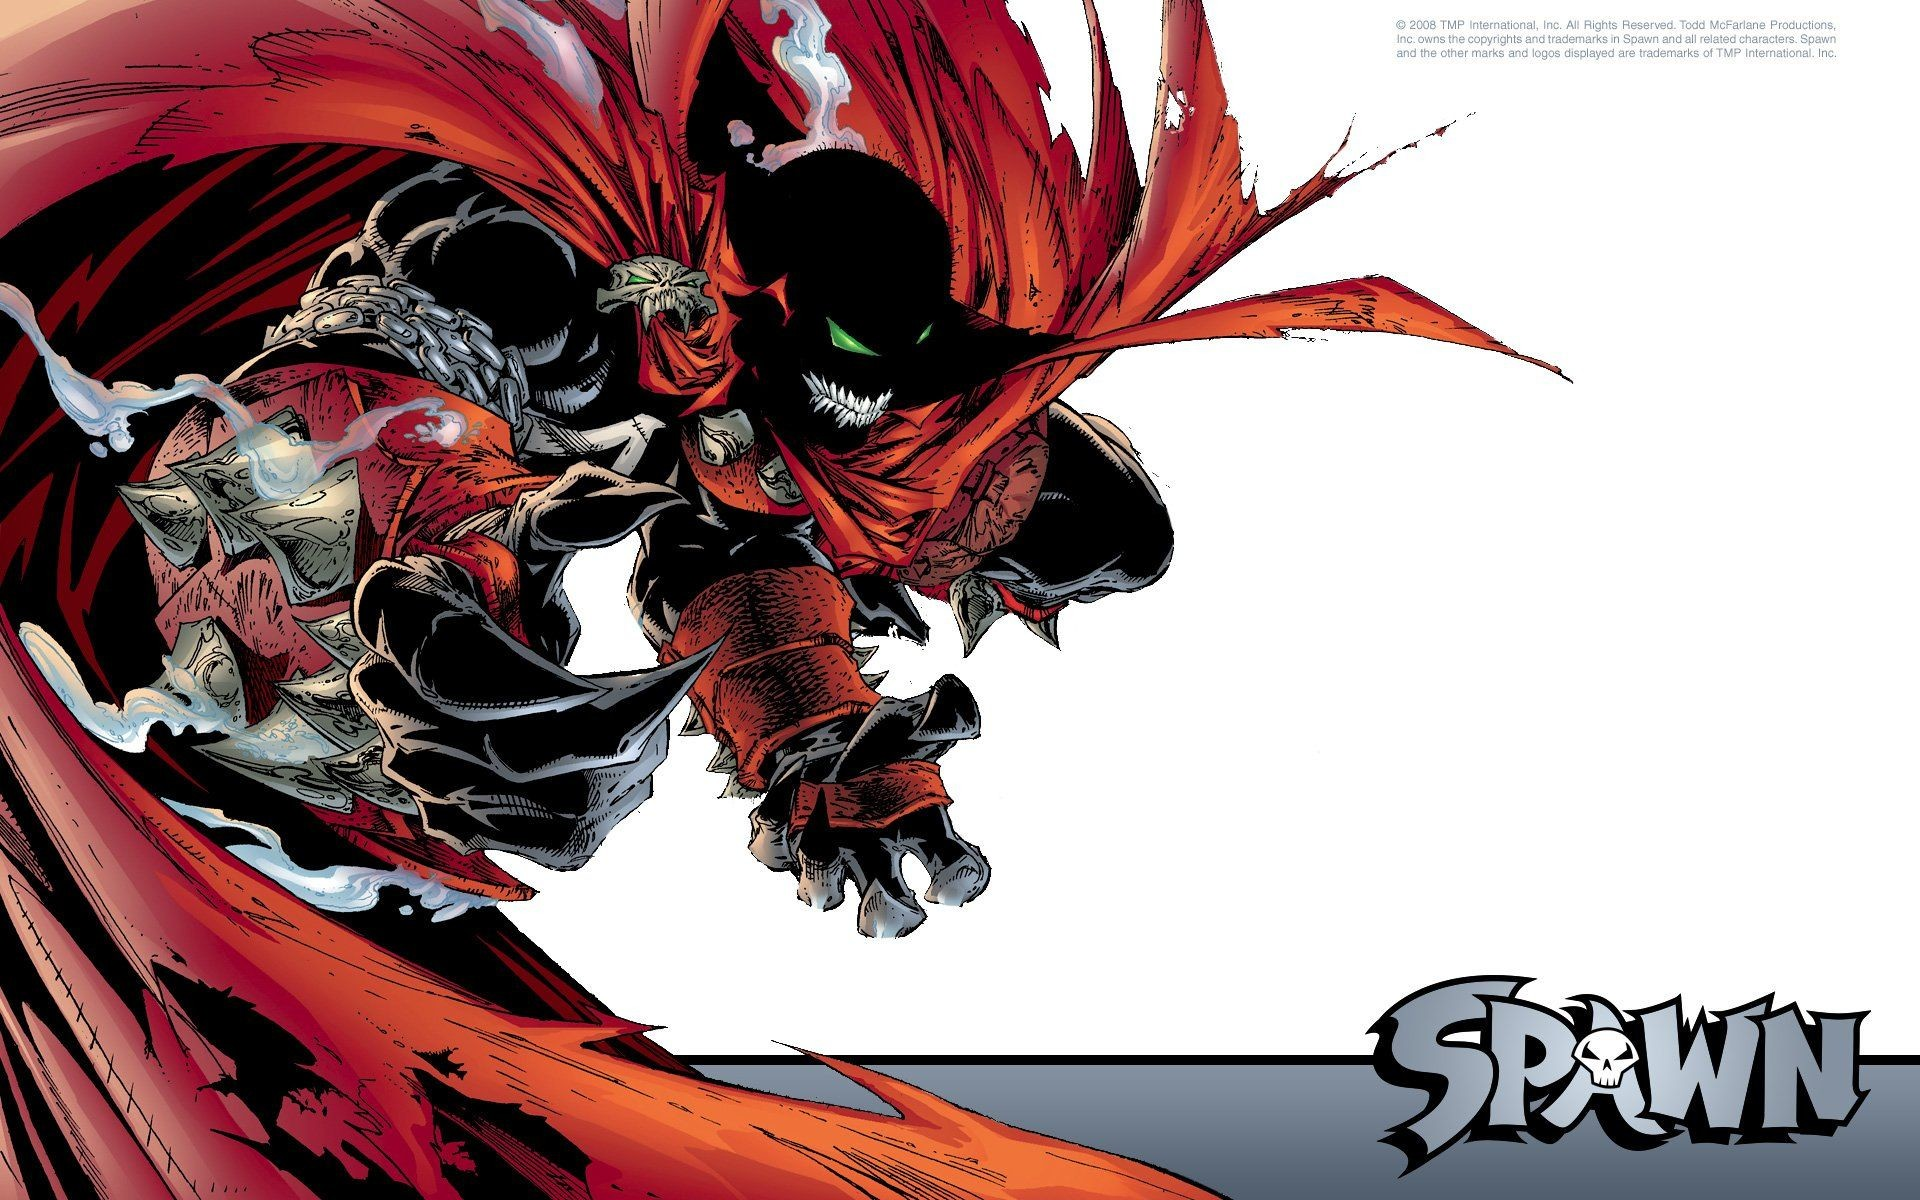 Res: 1920x1200, Hellspawn Wallpaper For Iphone